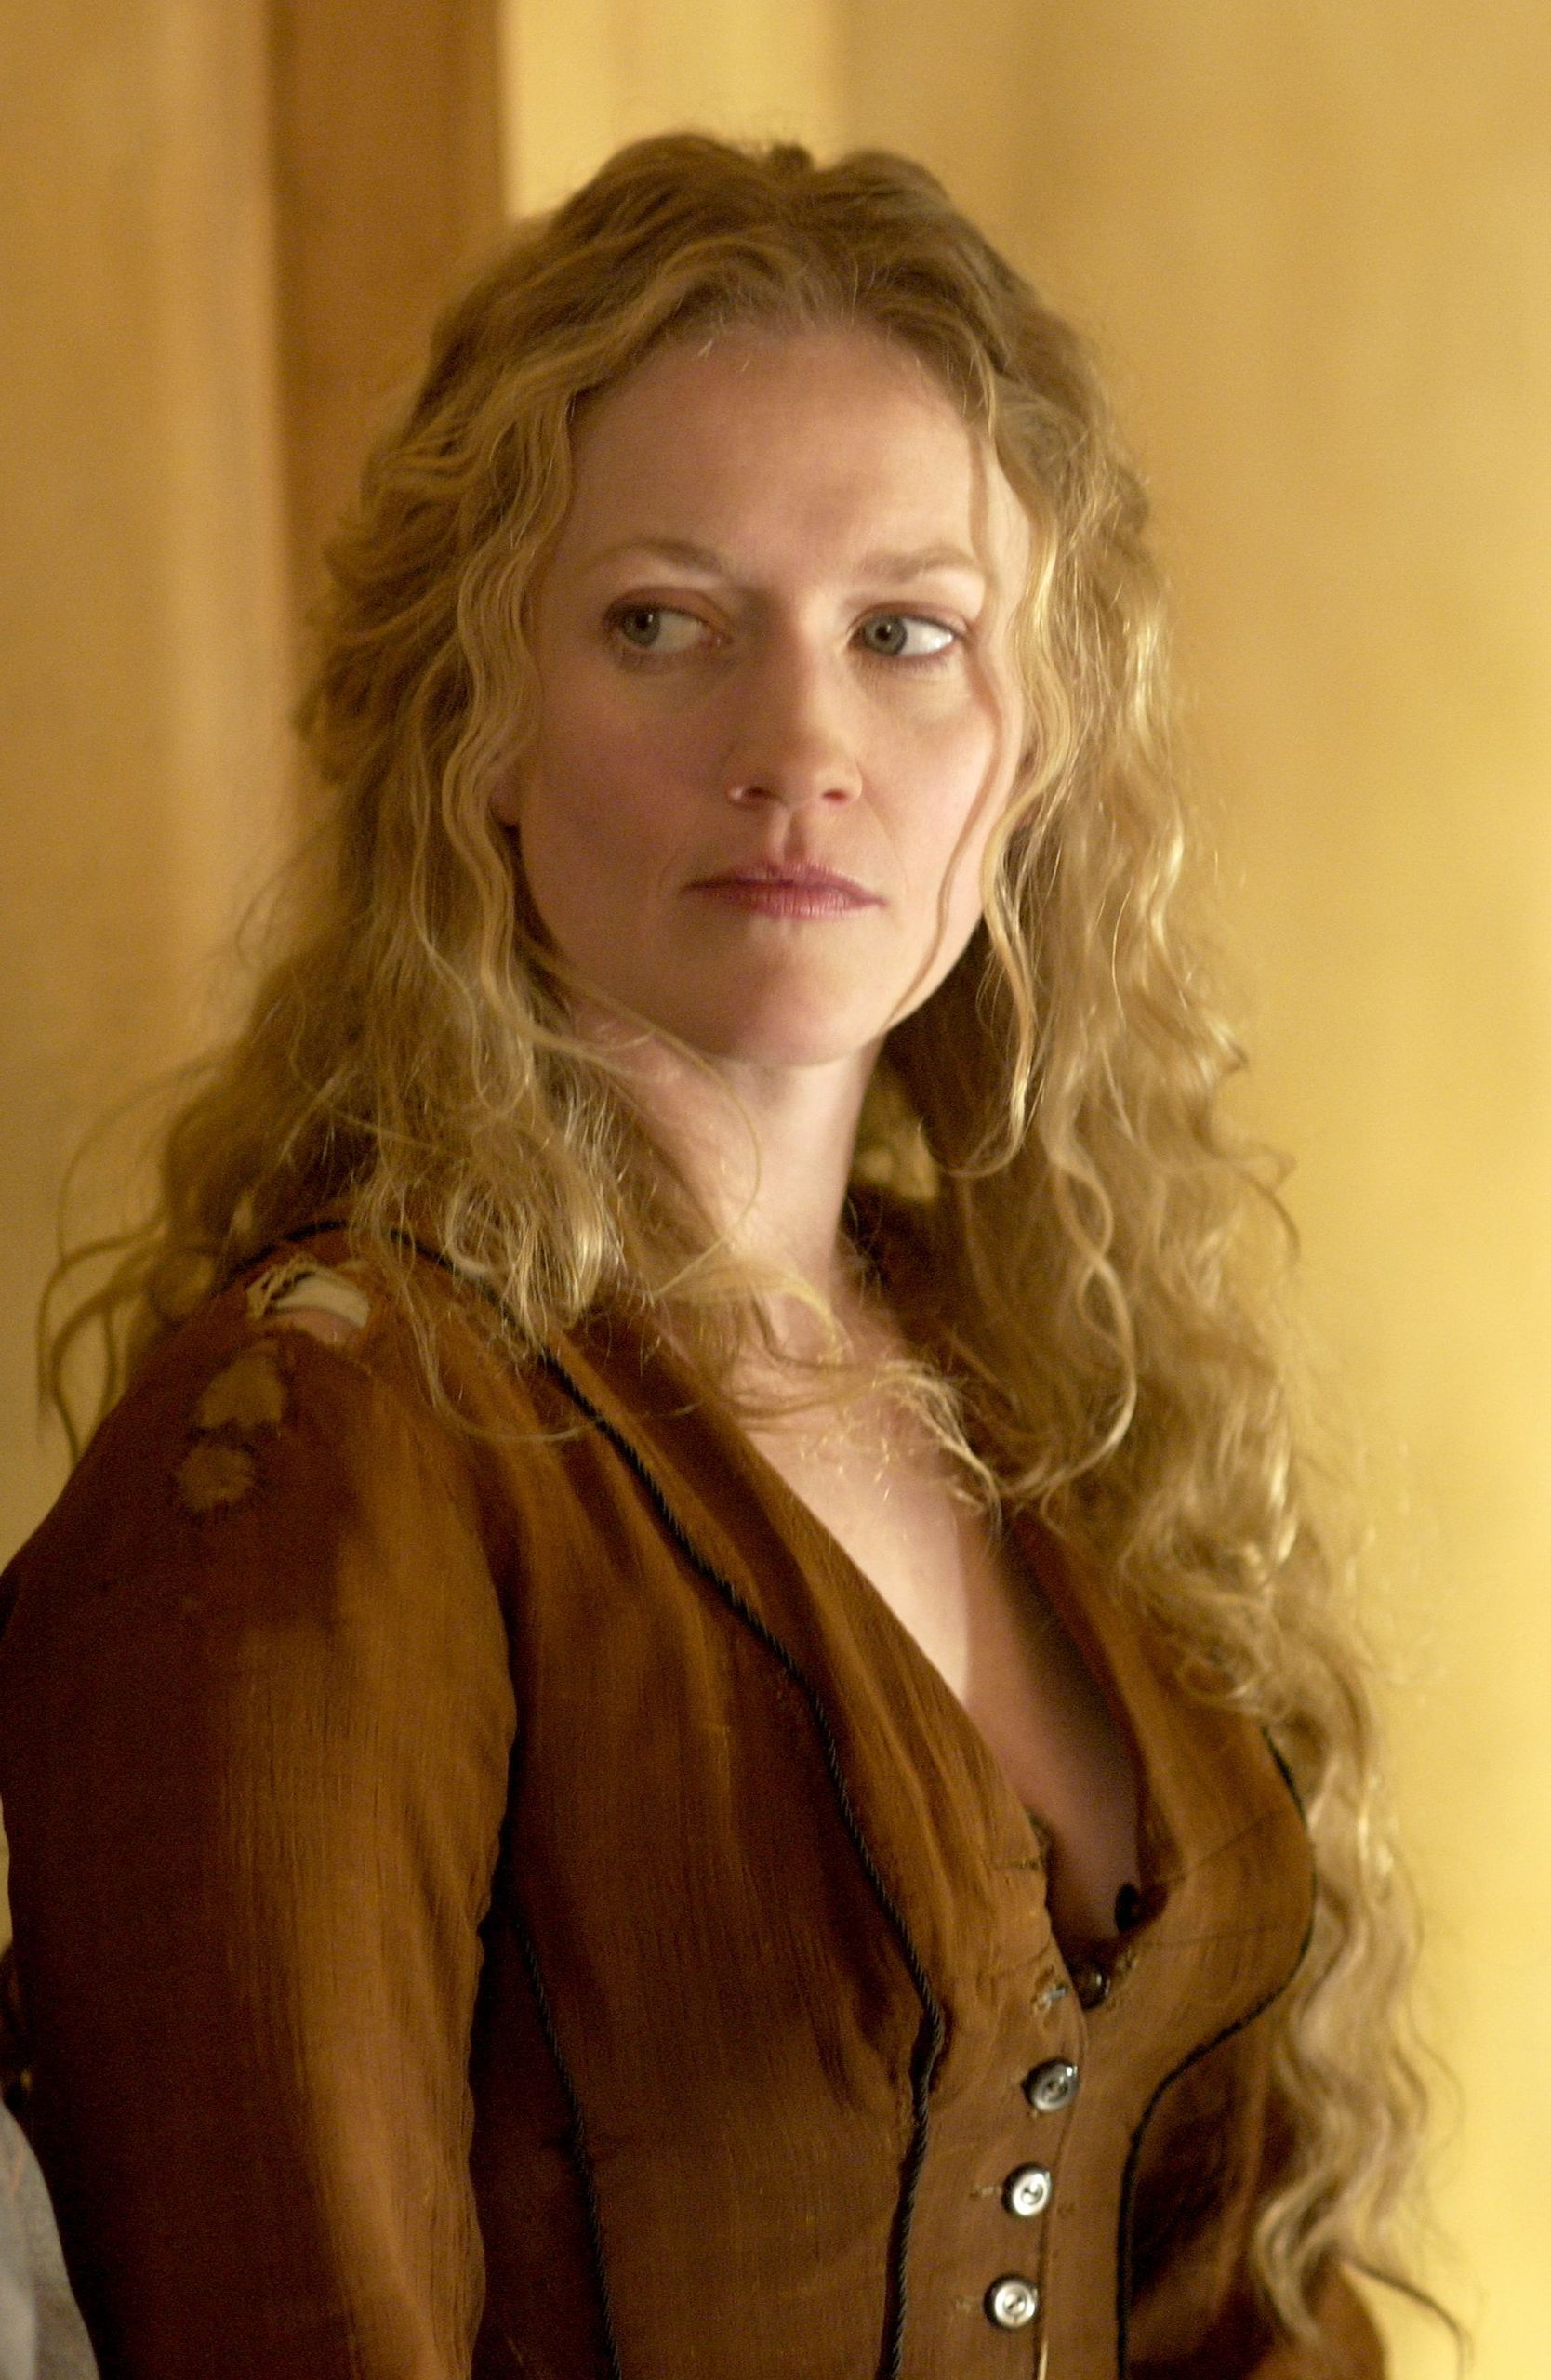 ICloud Paula Malcomson naked (35 foto and video), Ass, Fappening, Twitter, cameltoe 2018